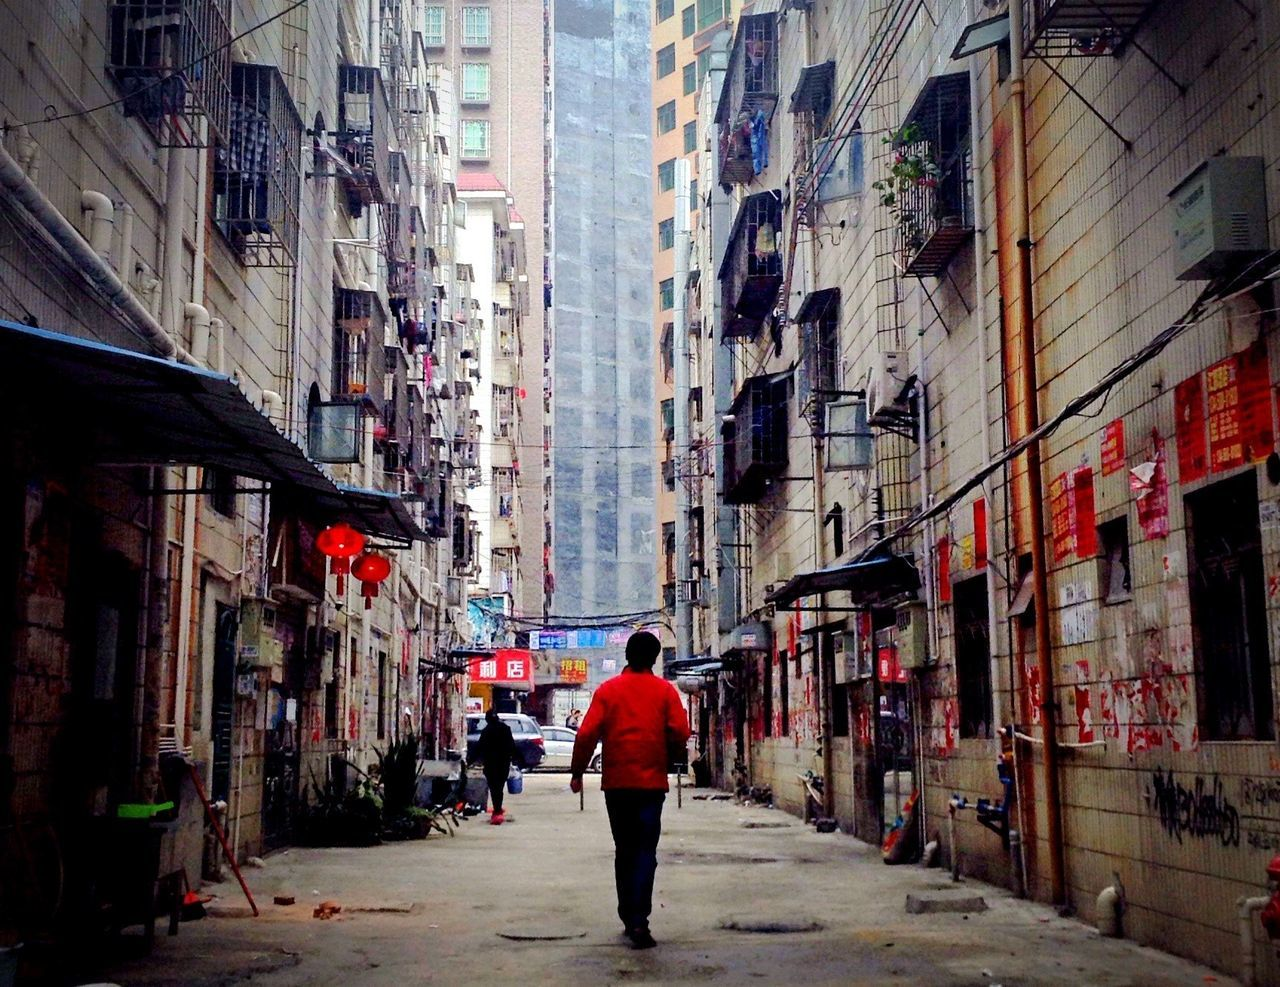 Full length rear view of man walking on footpath amidst buildings in city